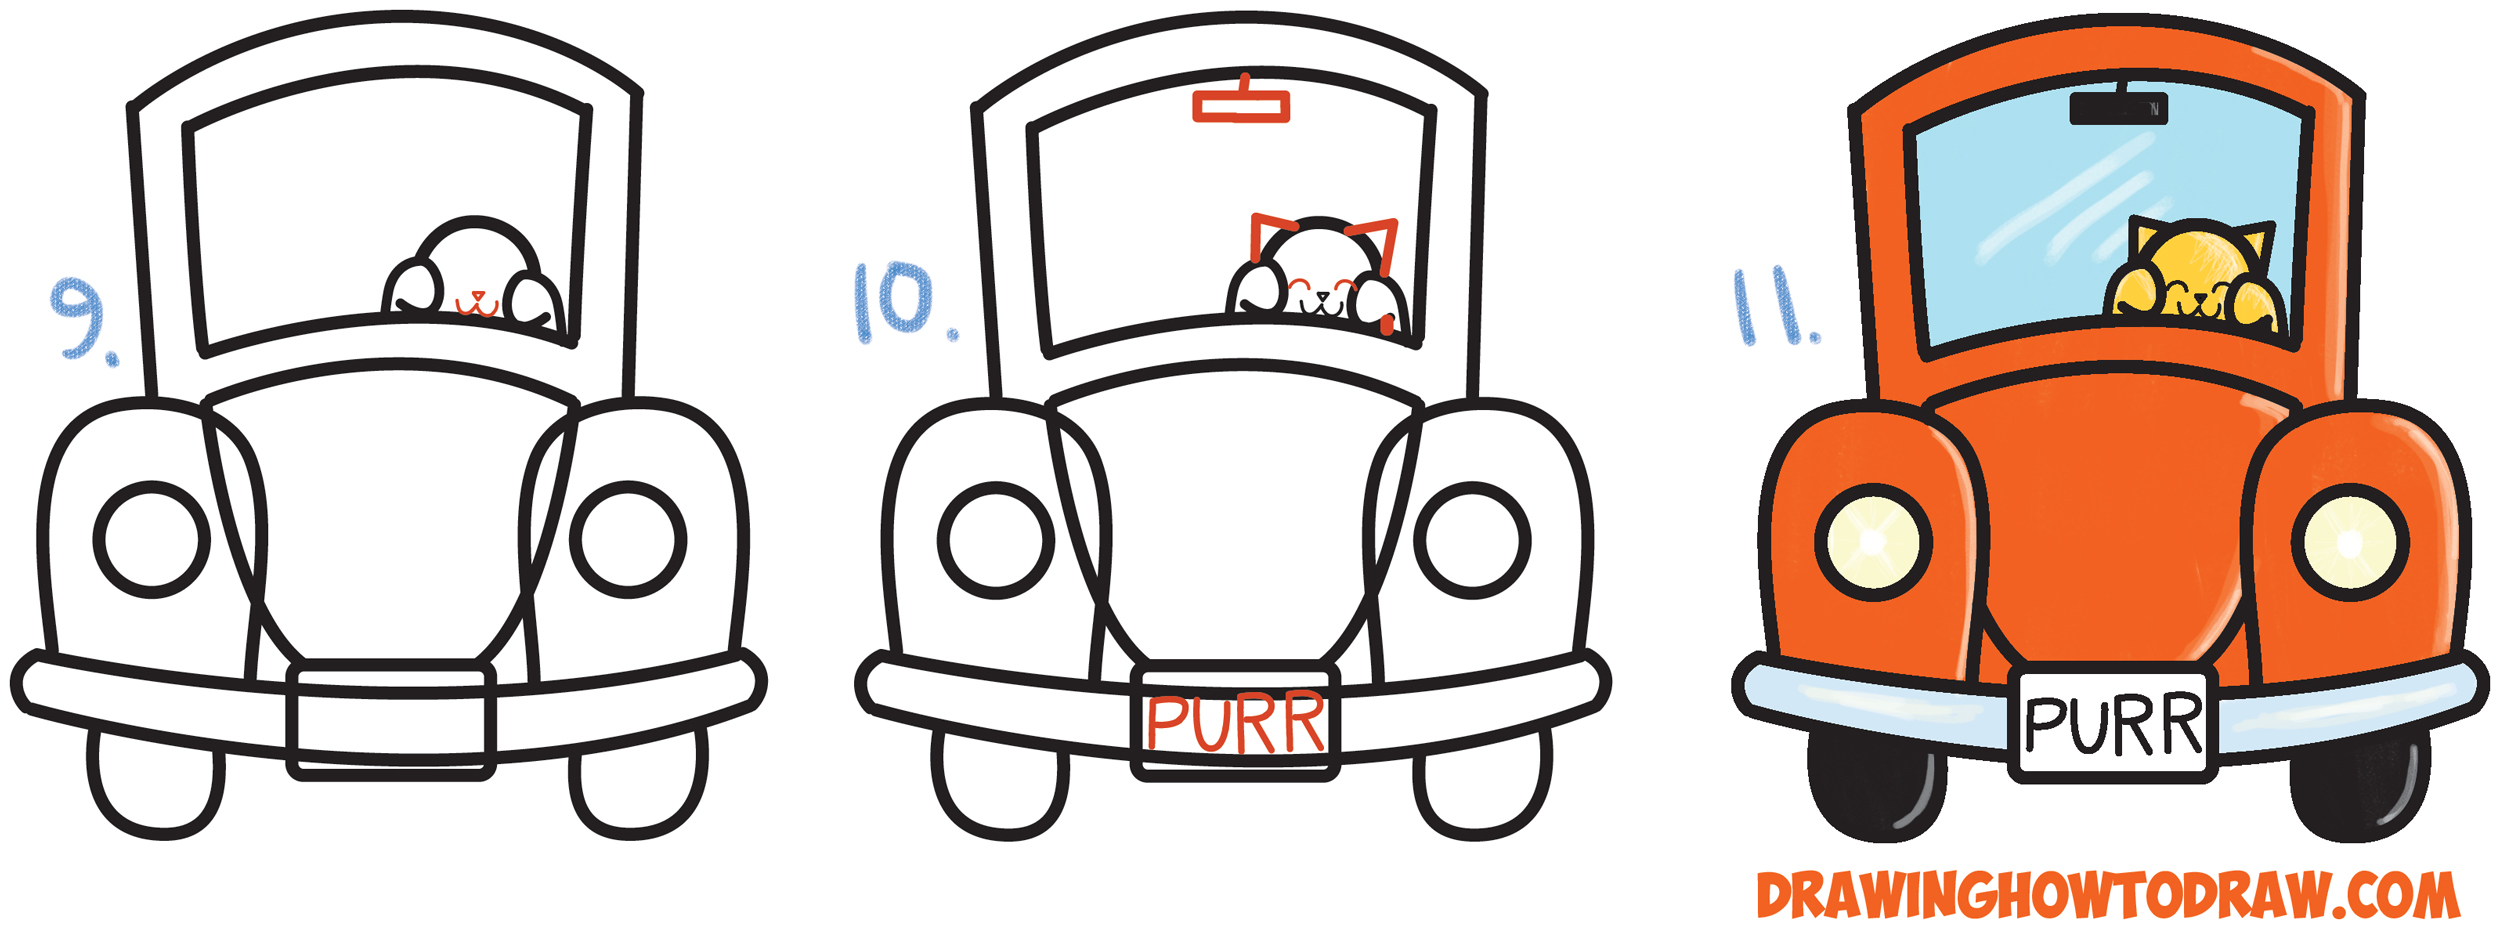 Learn How To Draw Cute Cartoon Cat Driving A Car From Exclamation Points  Simple Steps Drawing